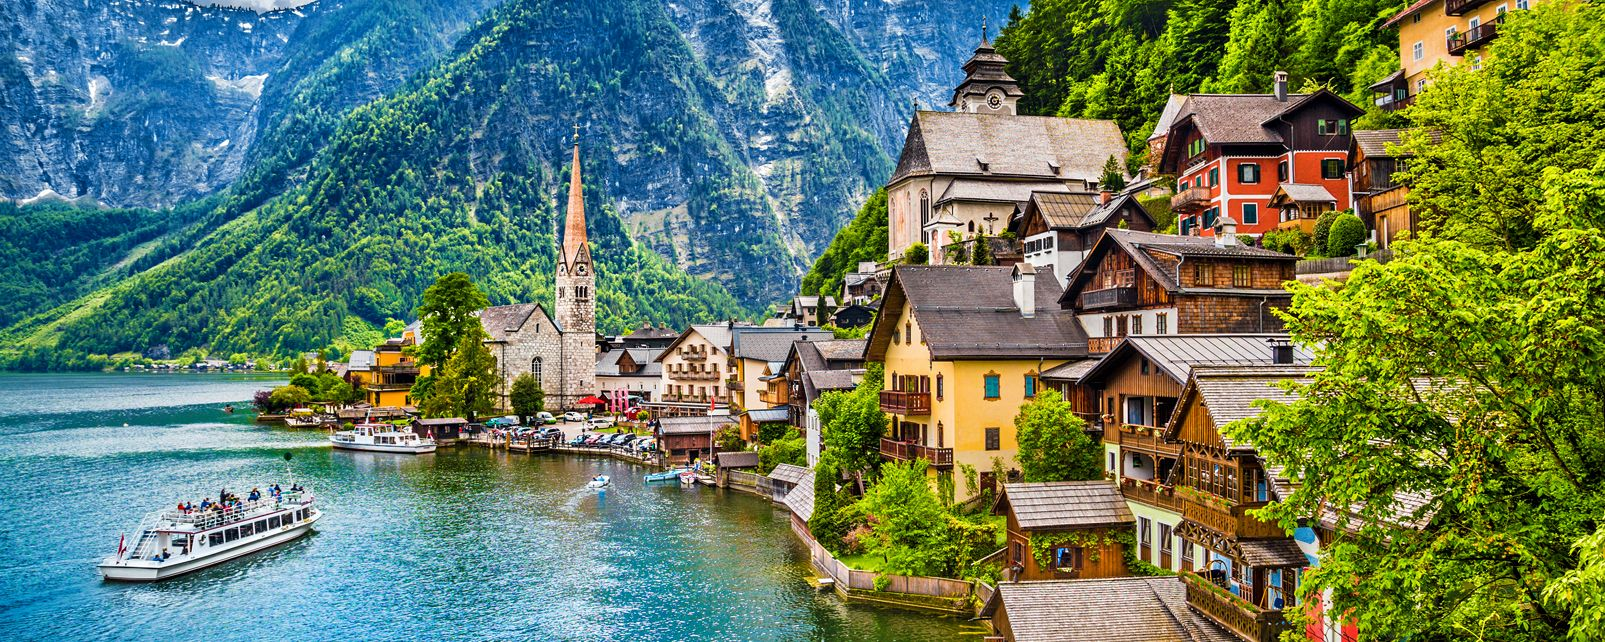 The Village Of Hallstatt Austria